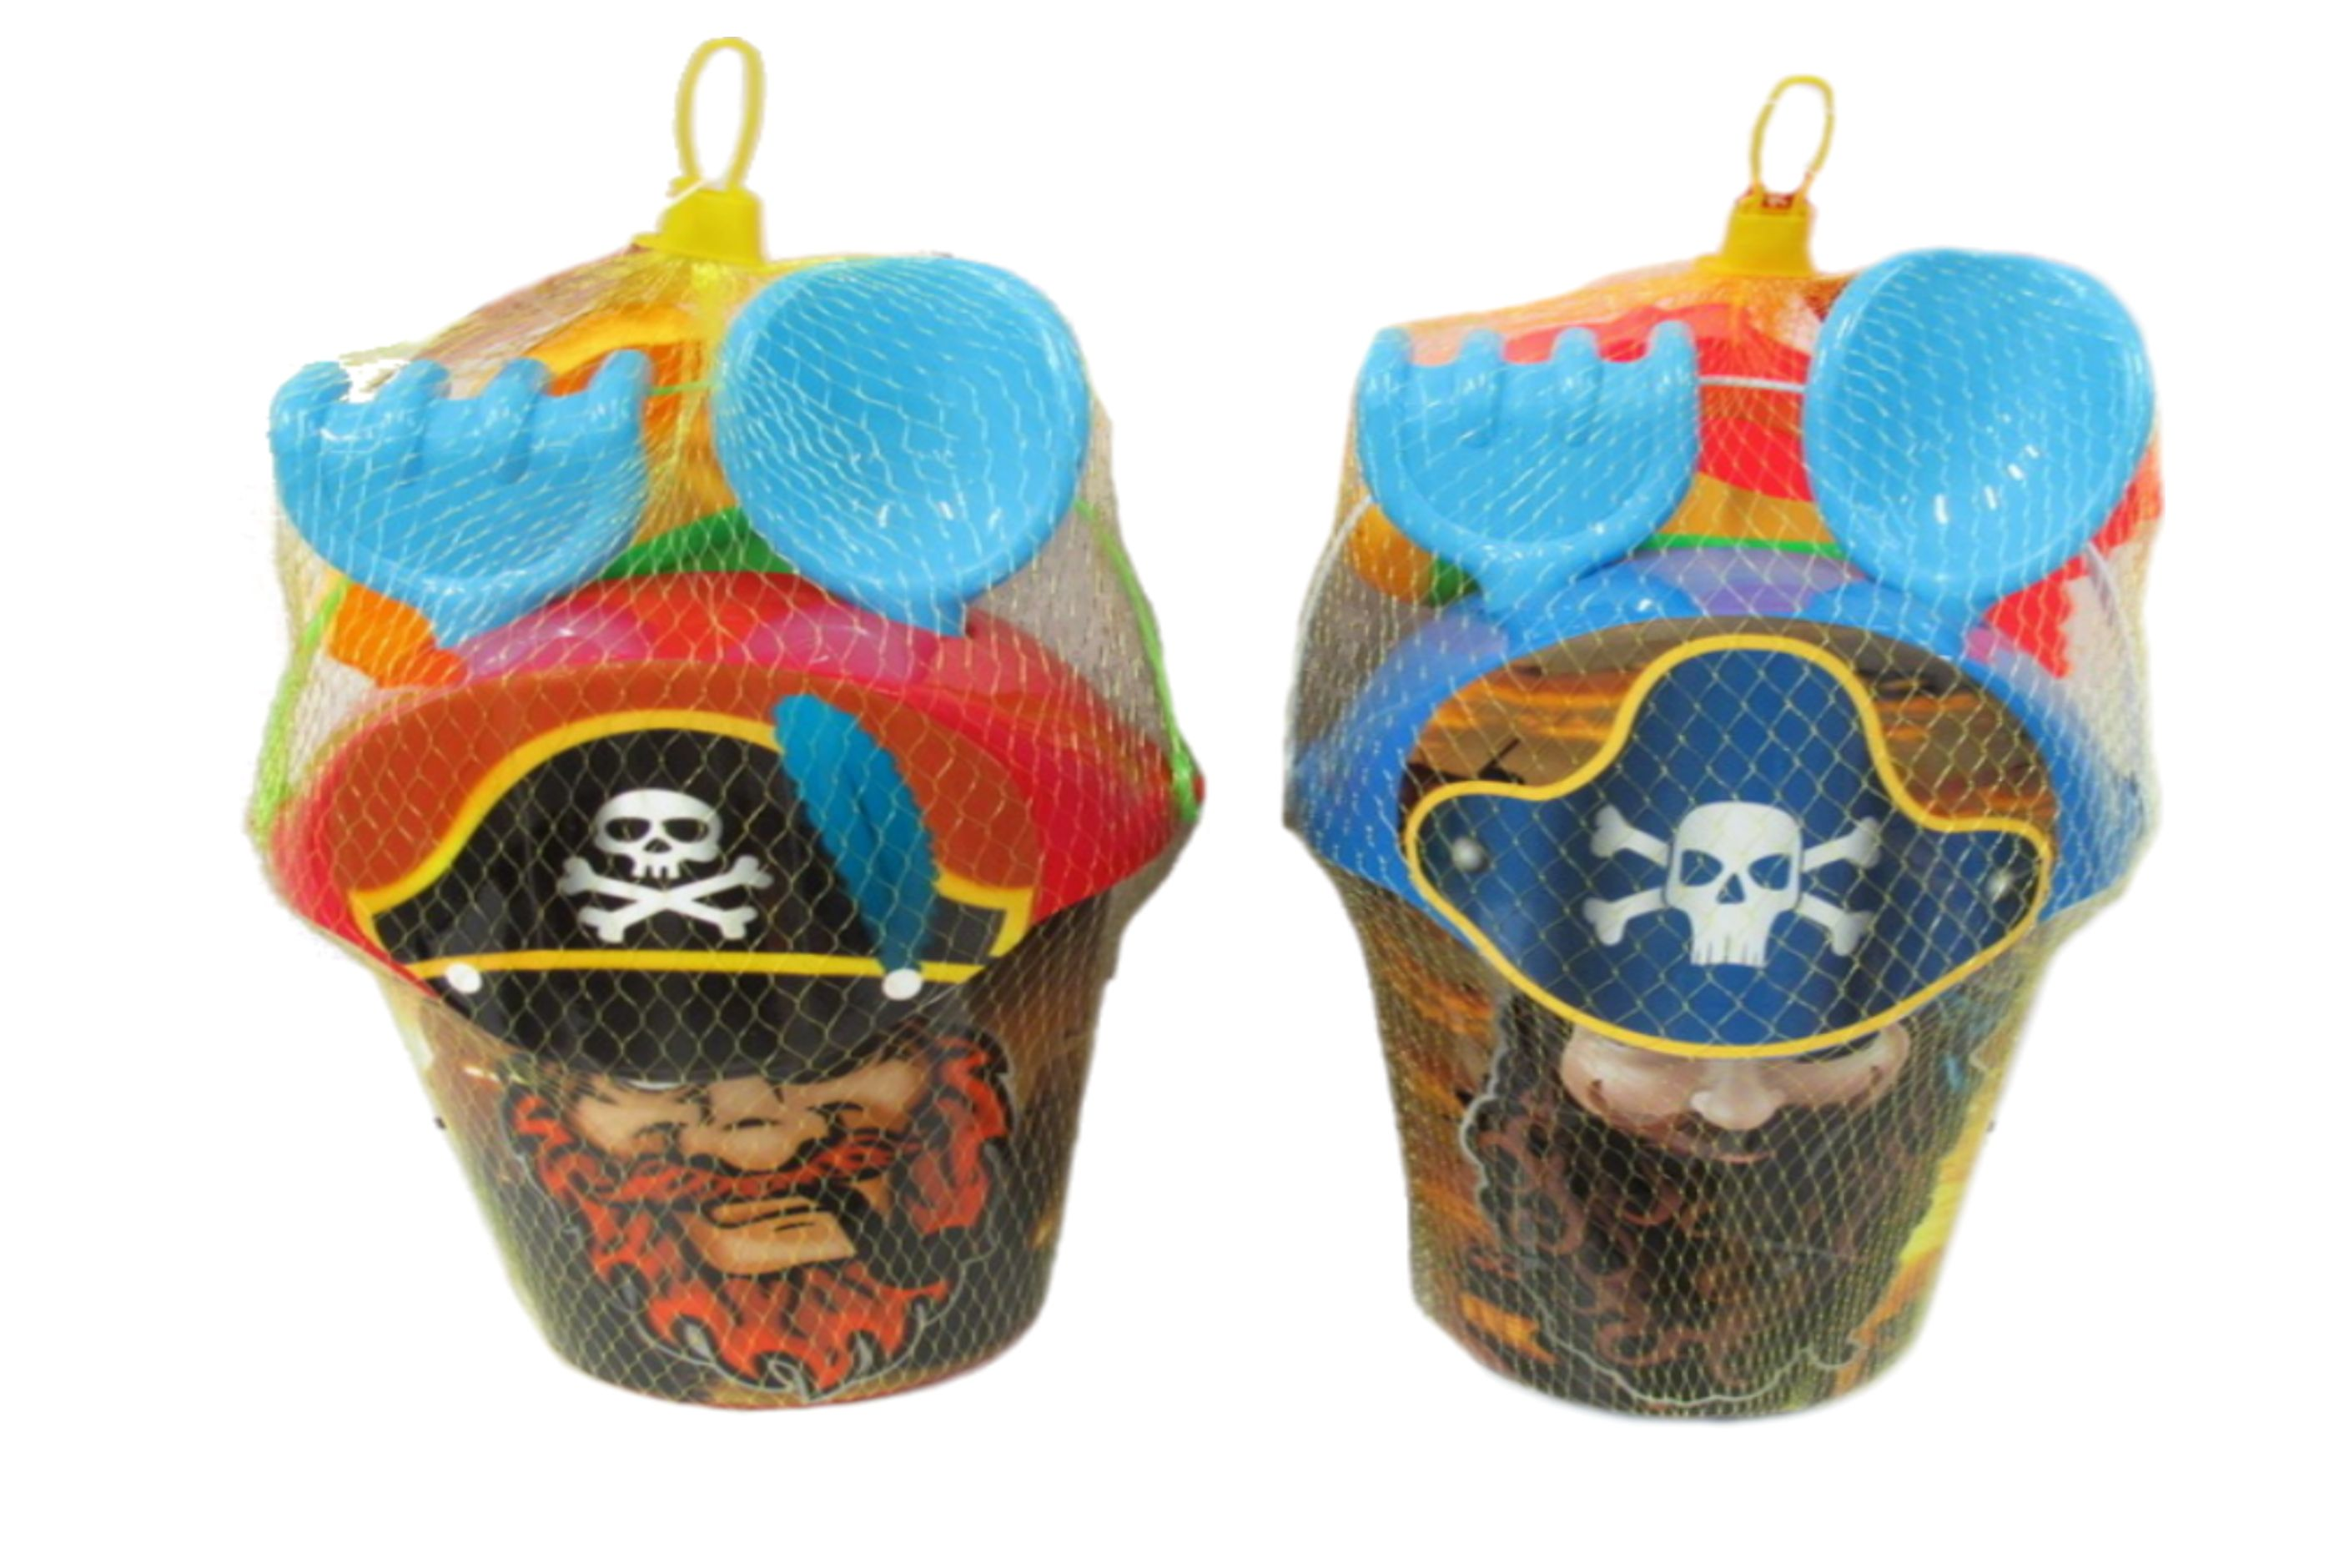 6pc Pirate Print Bucket Sets - 2 Assorted - Netted